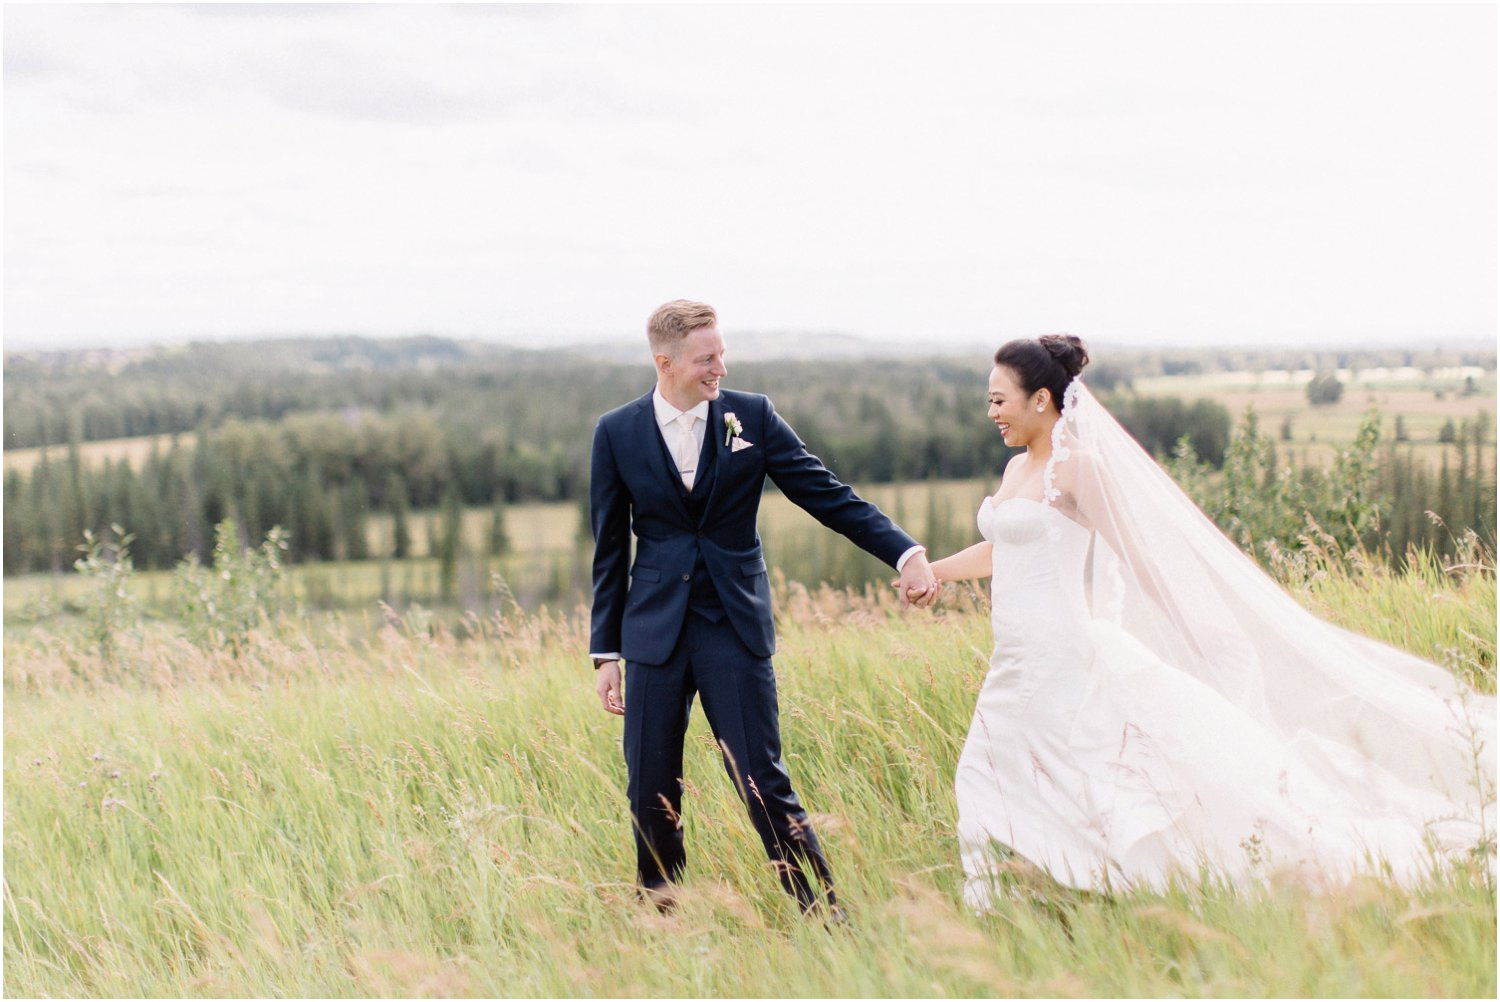 Pinebrook Wedding Photography - Calgary Wedding Photographer_4858